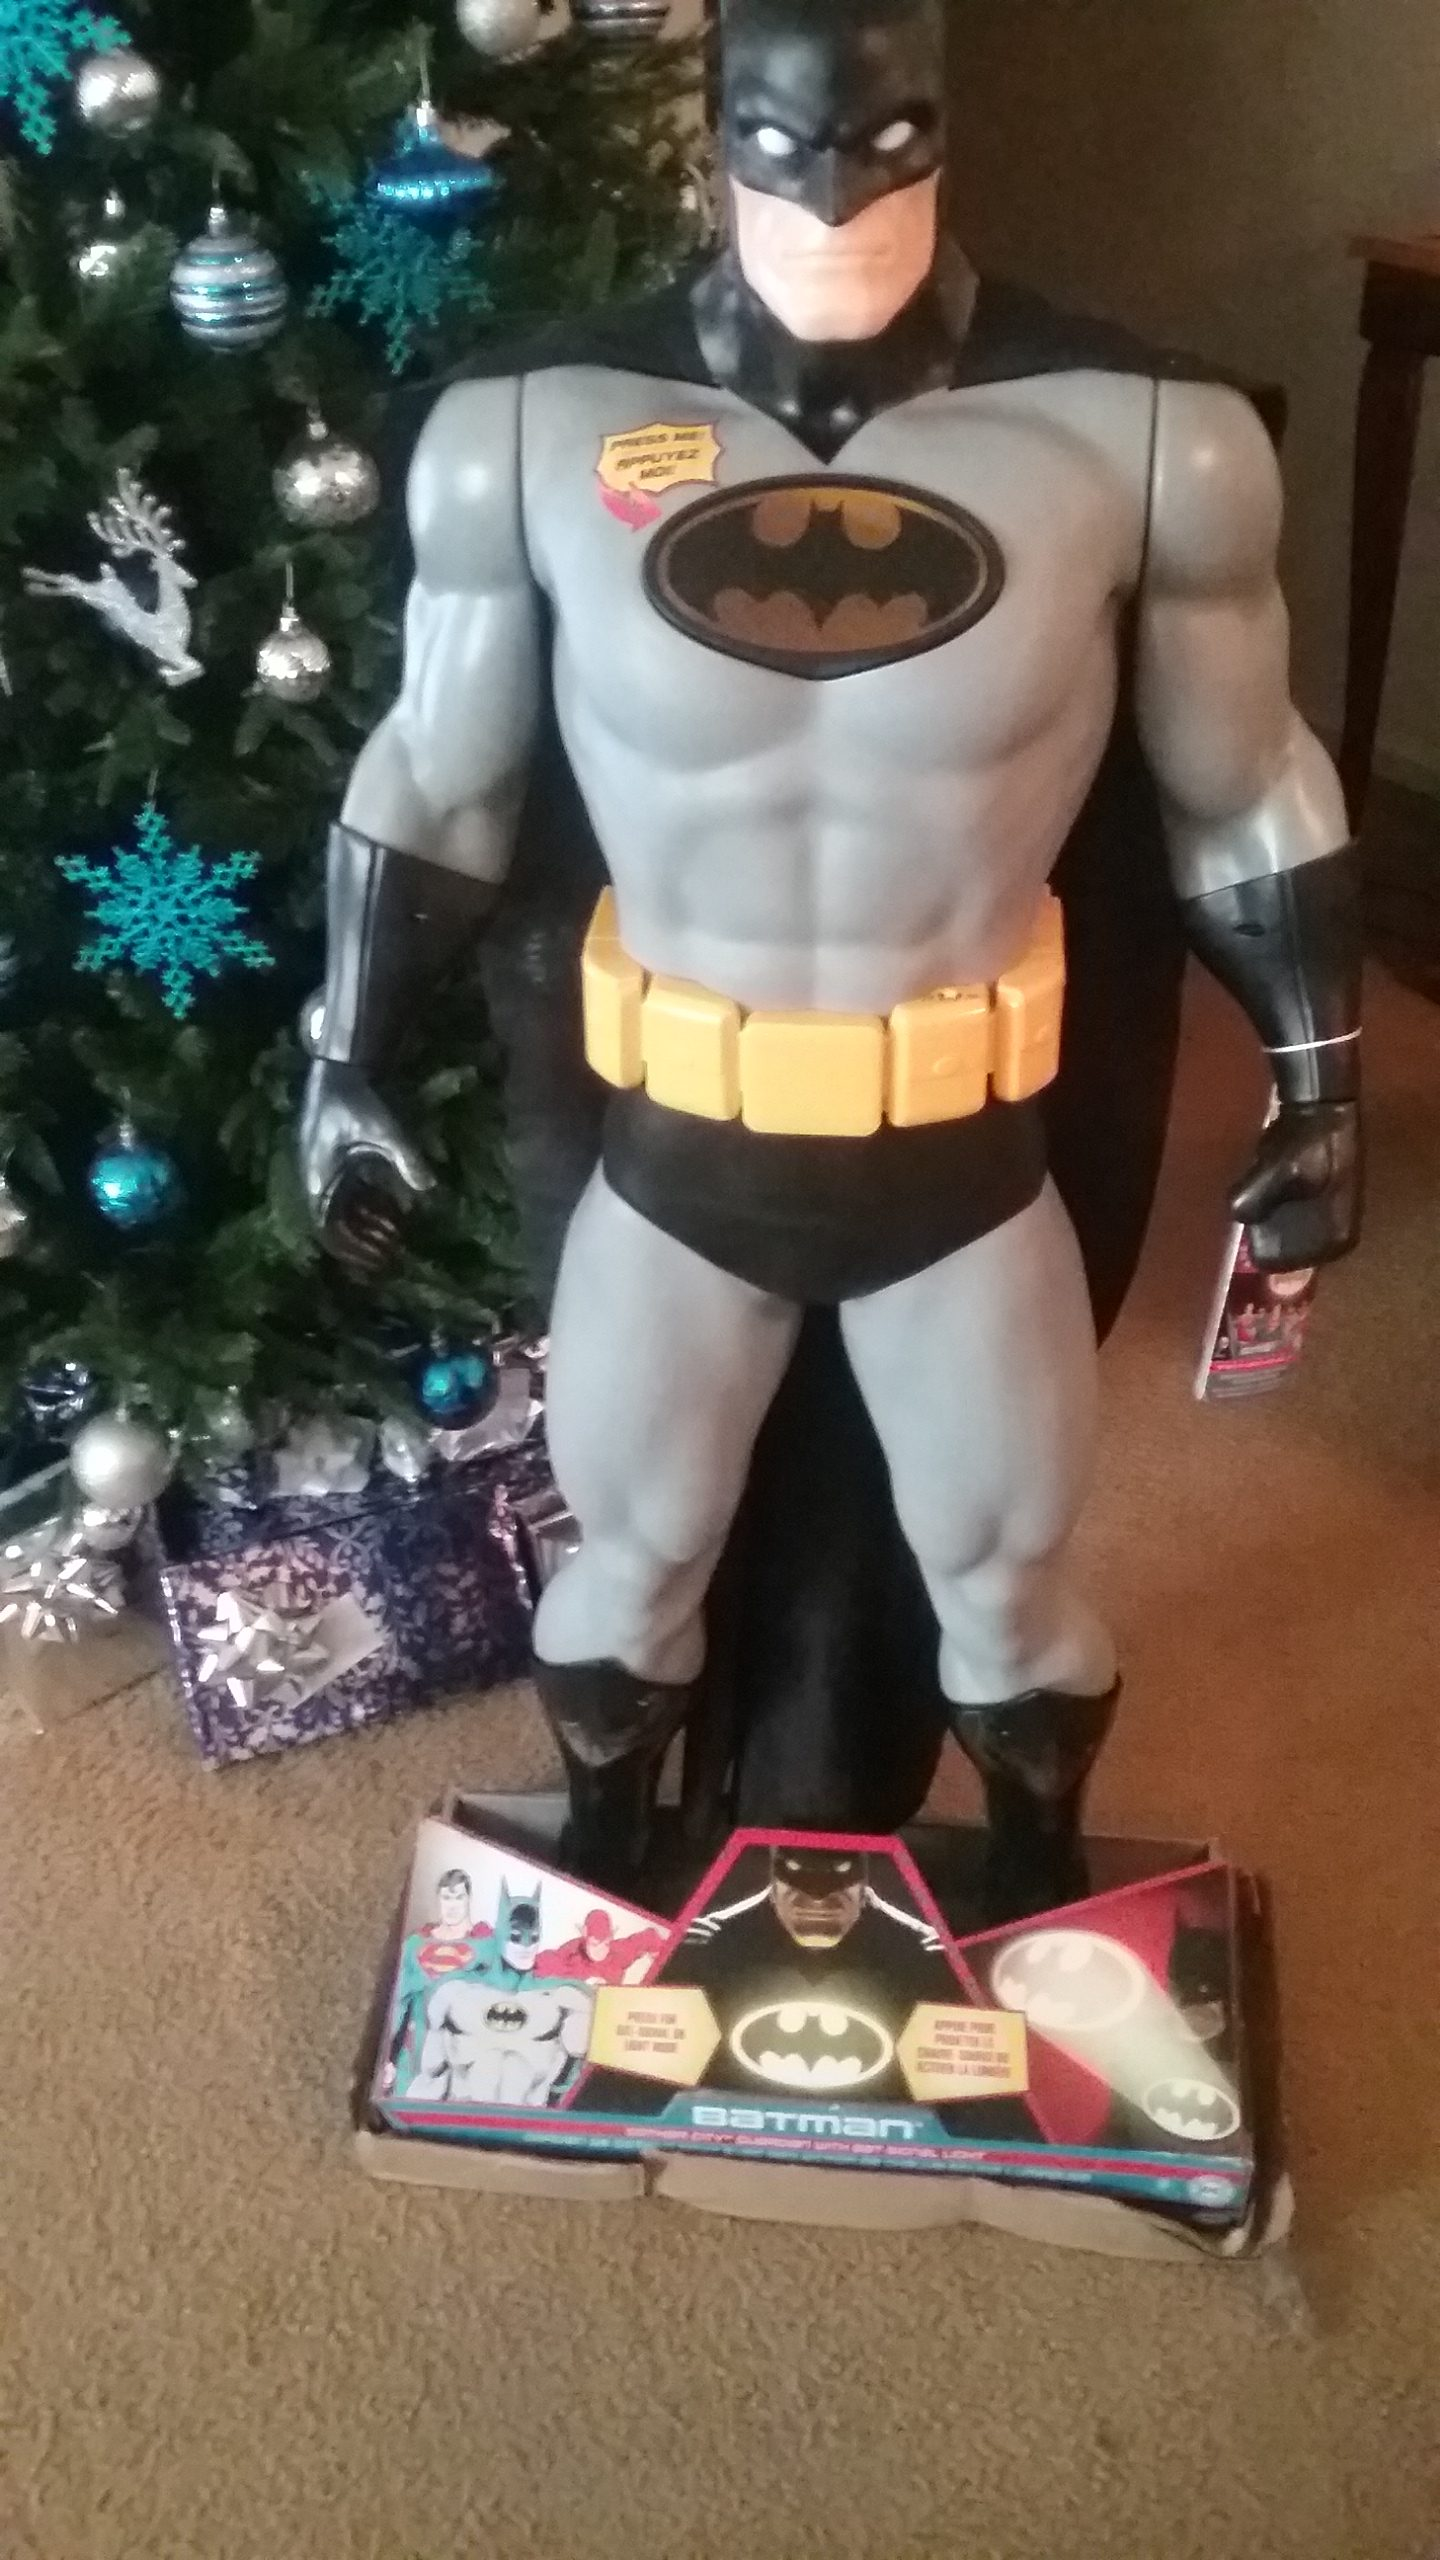 """2016 Holiday Guide Featuring Big-Figs Colossal DC Universe 48.5"""" Gotham Guardian with Bat Signal Light From JAKKS Pacific Toys!"""